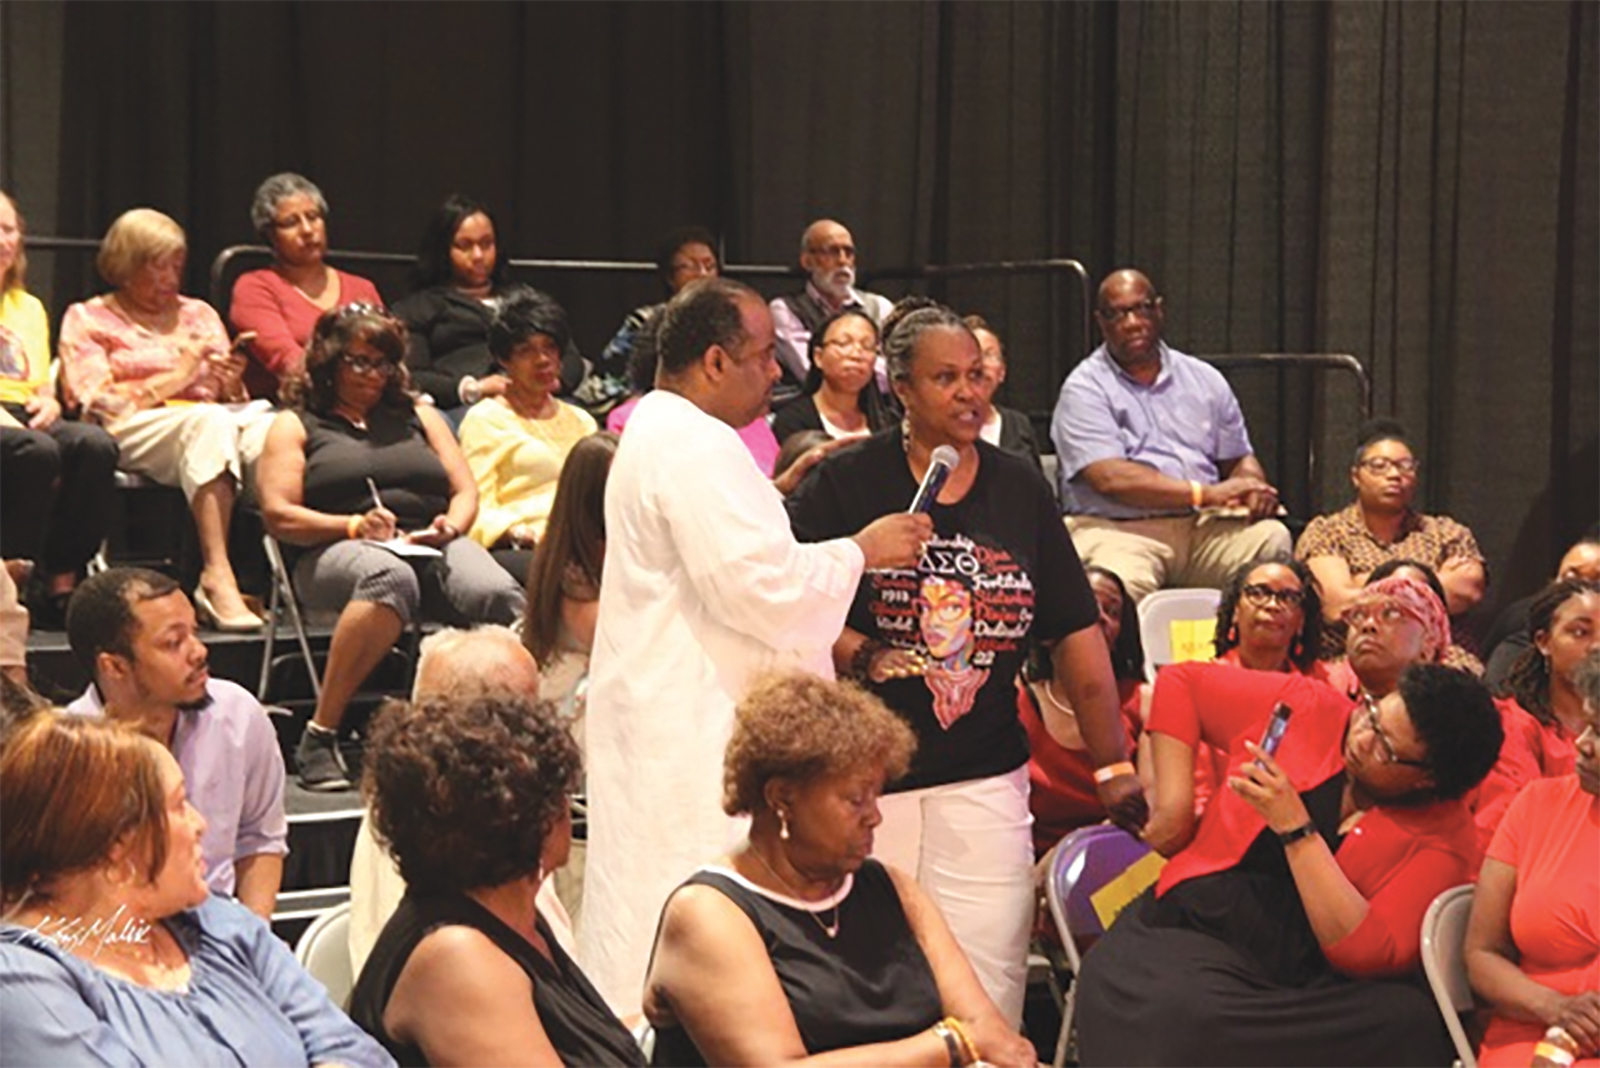 Photo By: Khiry Malik, Roland Martin takes questions from a town hall attendee directed to the panelist.